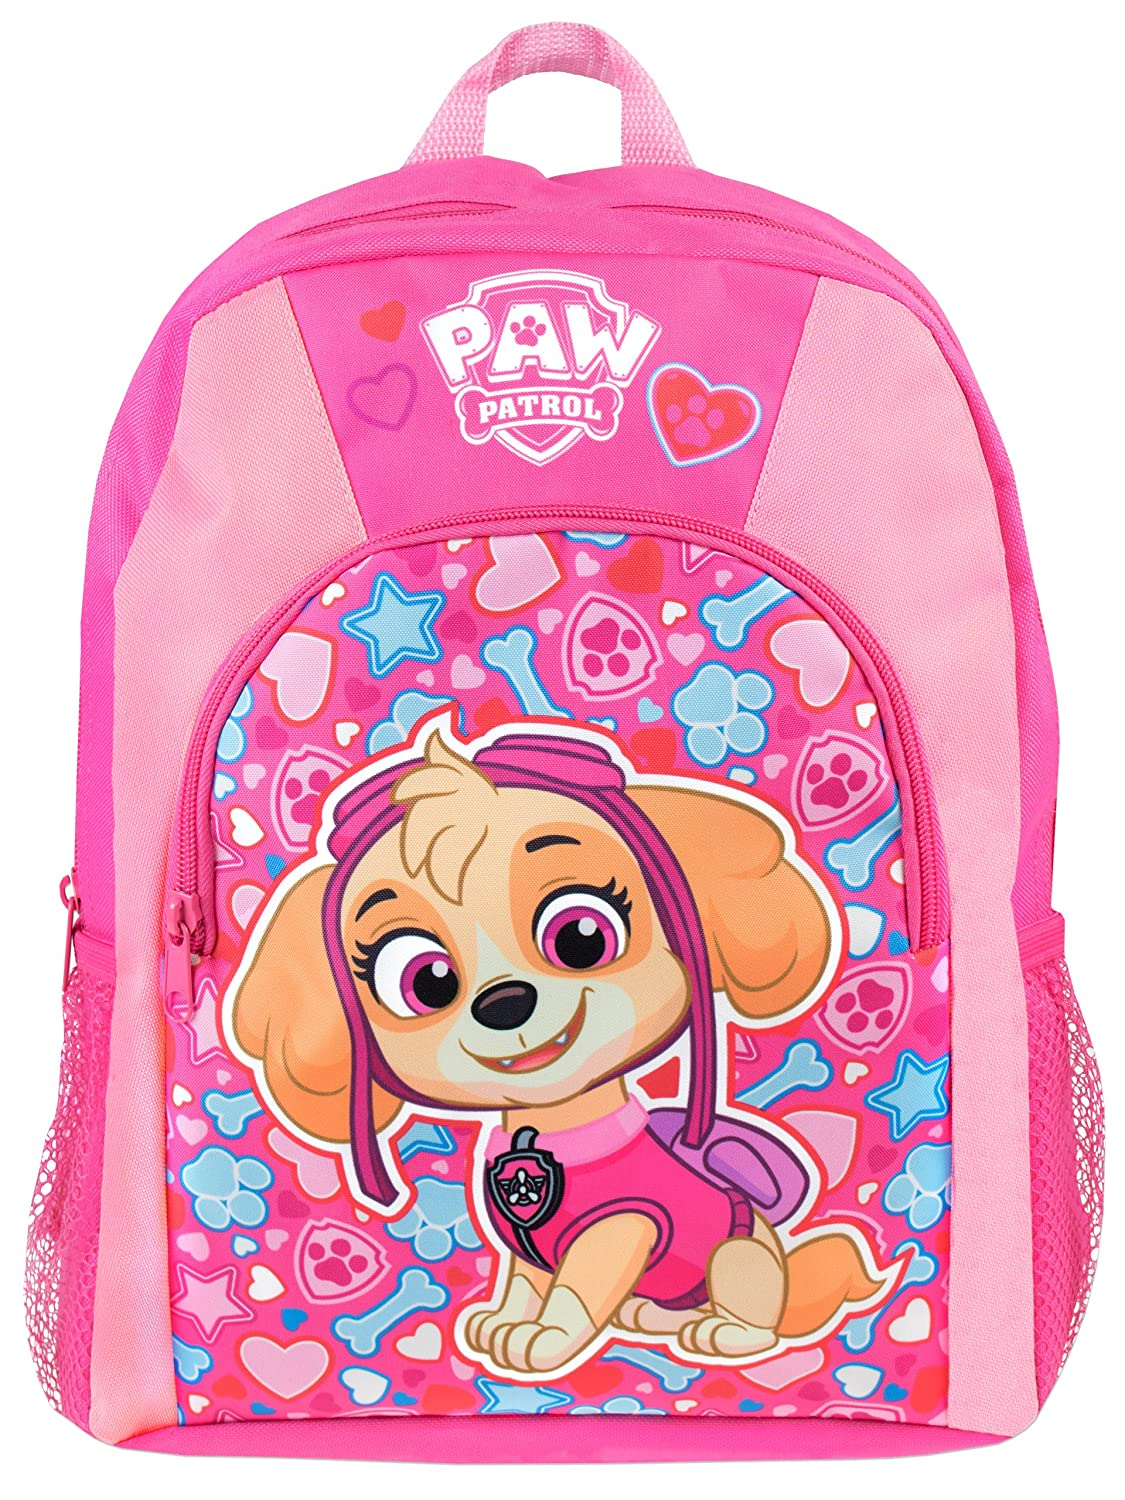 Paw Patrol Fille Paw Patrol Sac à Dos - Rose - One Size Trademark Collections 5.03628E+12